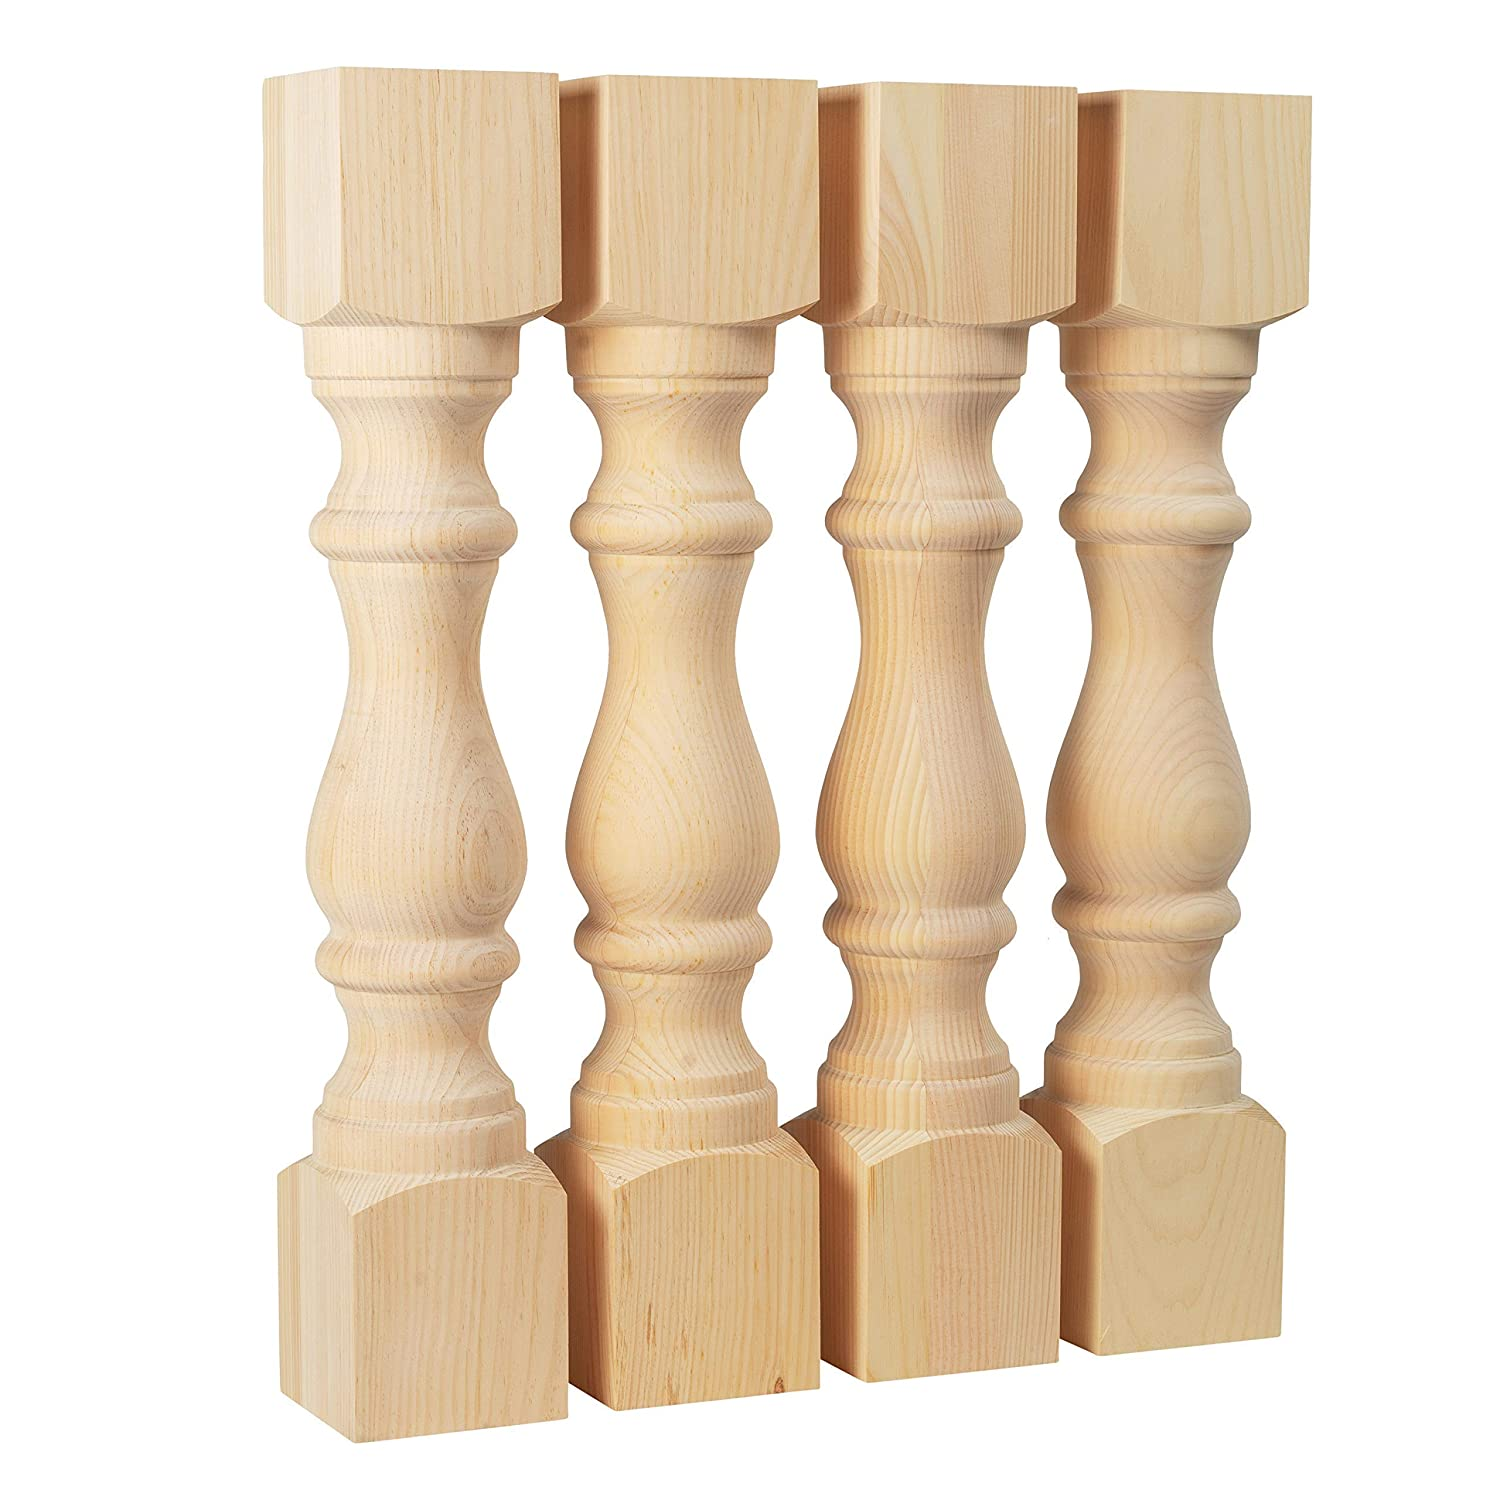 5 x 5 x 29 Inch Dimensions Handcrafted in USA Pine Dining Table Legs Set of 4 Widely Compatible Wood Chunky Monastery Farmhouse Table Legs